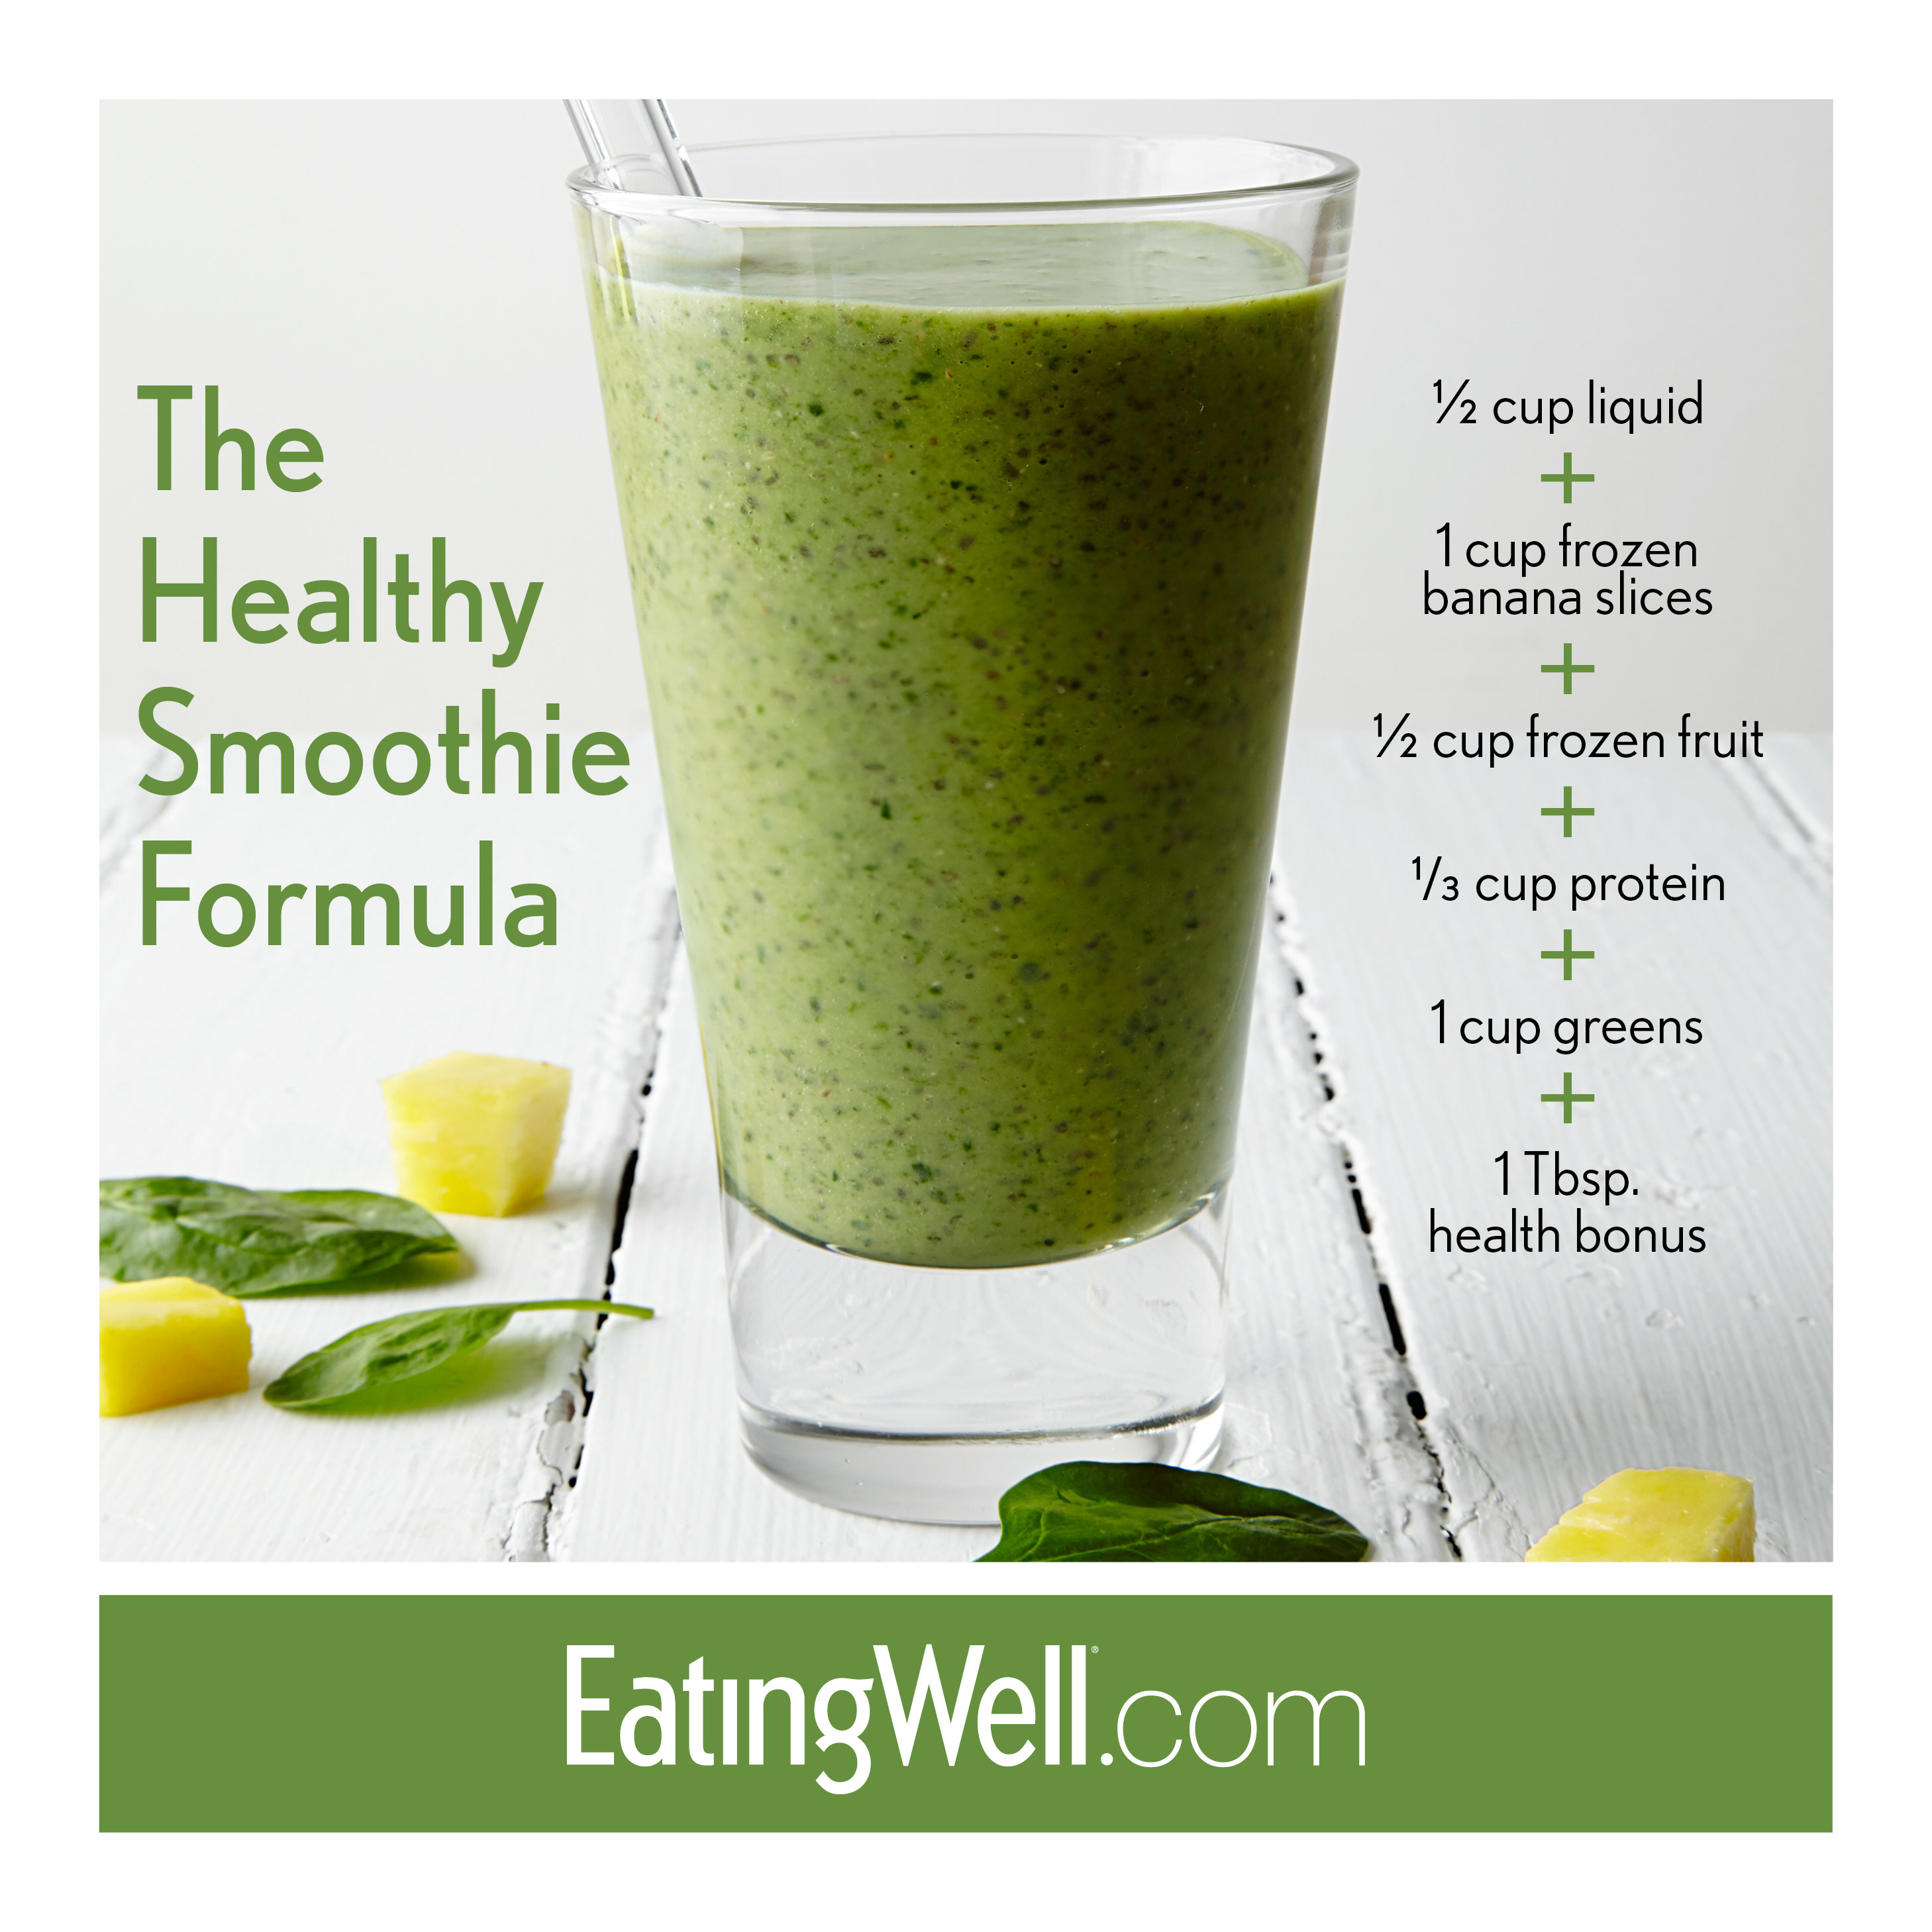 Best Healthy Smoothie Recipes  The Ultimate Green Smoothie Recipe EatingWell